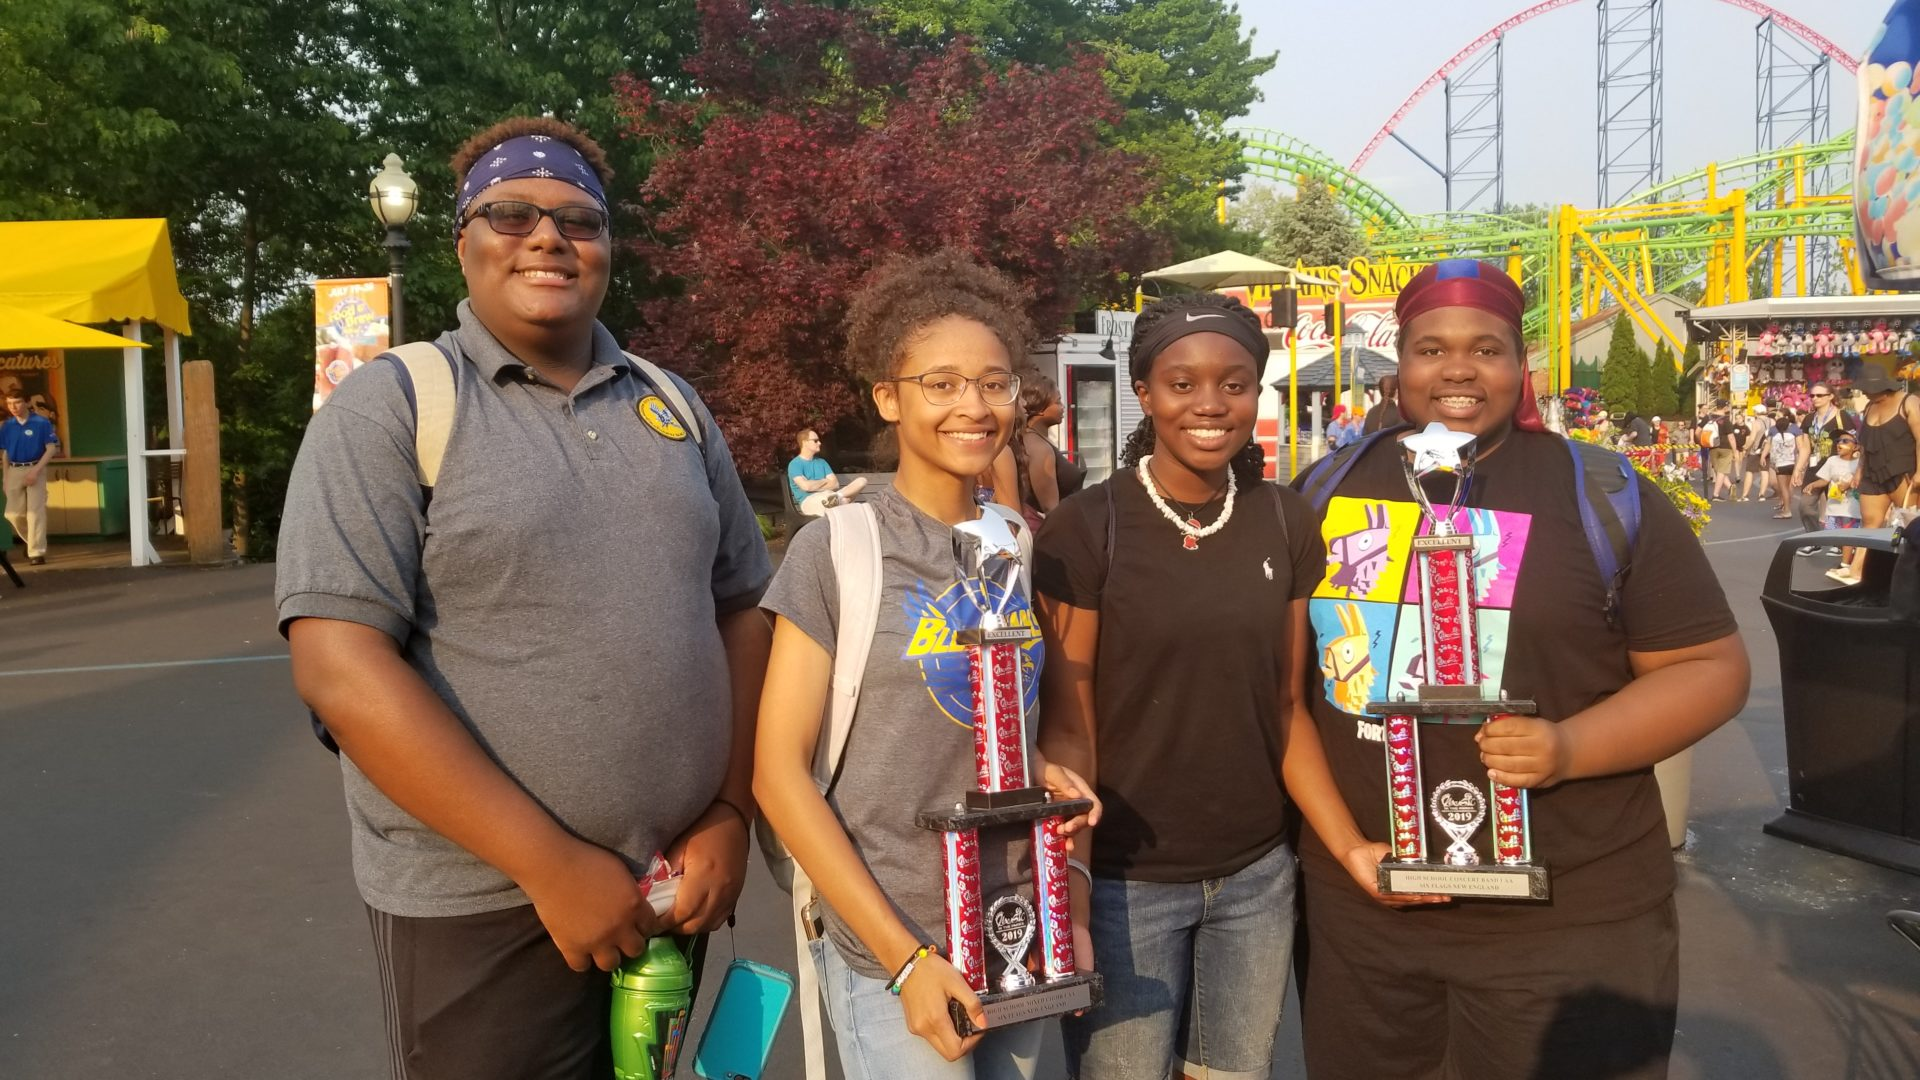 students at amusement park hold trophies